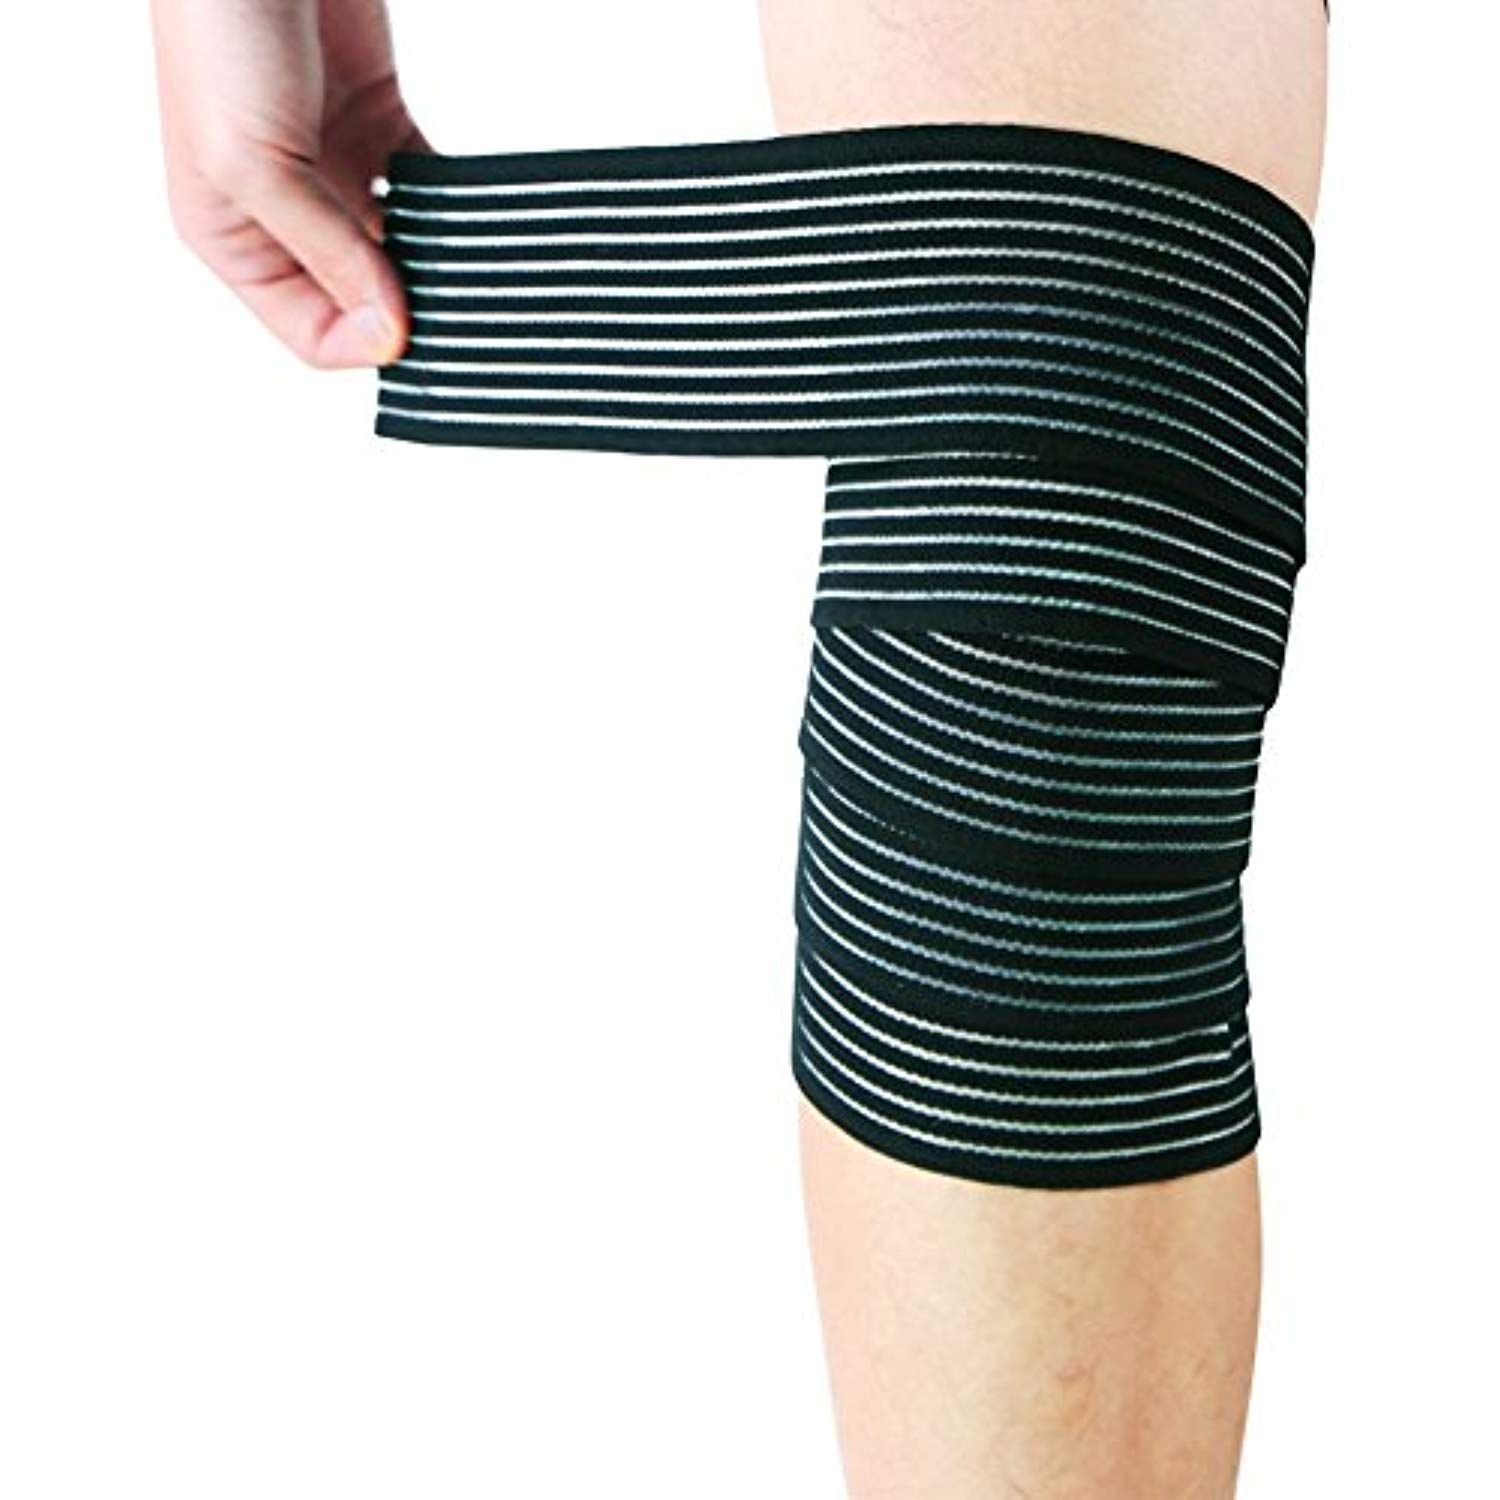 Park Art My WordPress Blog_How To Wrap Knee With Ace Bandage After Surgery